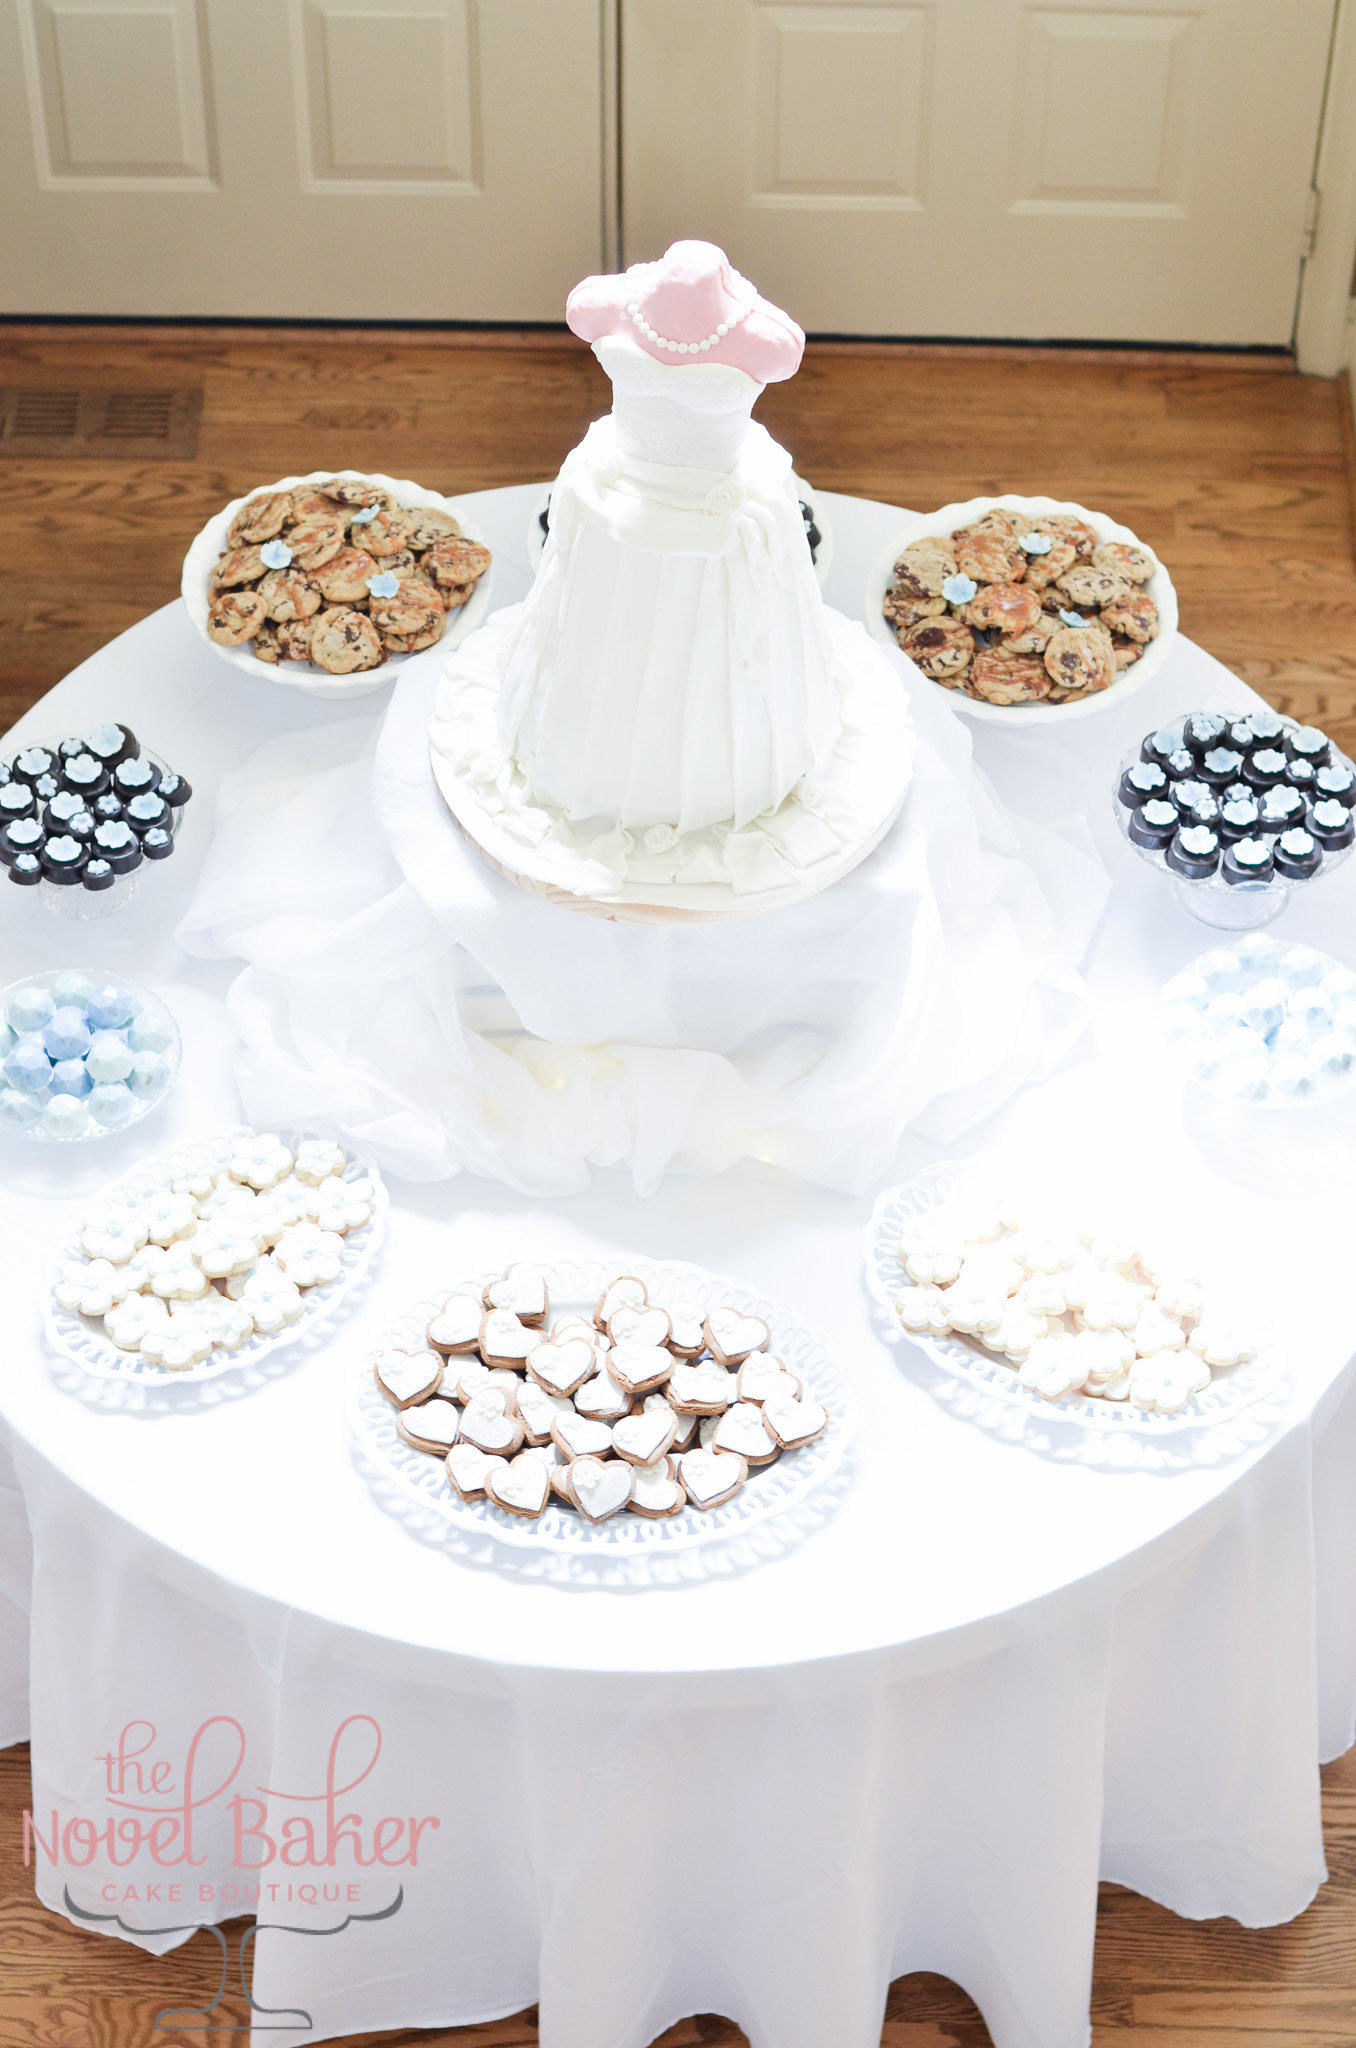 A 3-dimensional bride dress cake surrounded by pedestals and plates of cookies, all set out on a round table.